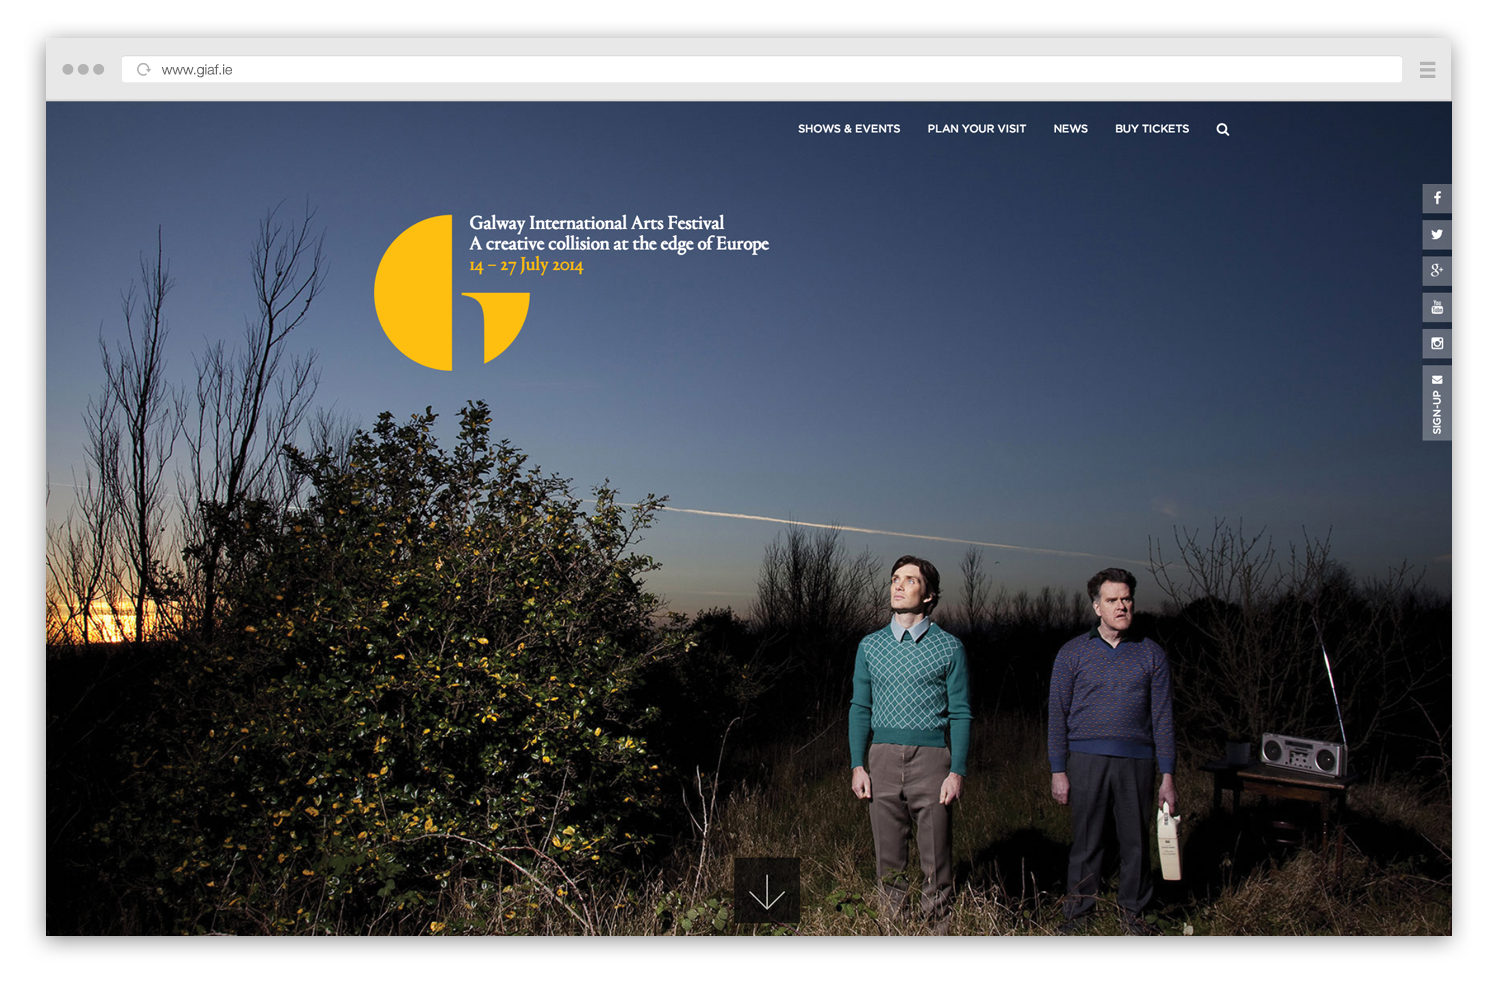 Cover image: Galway International Arts Festival Website (2014)